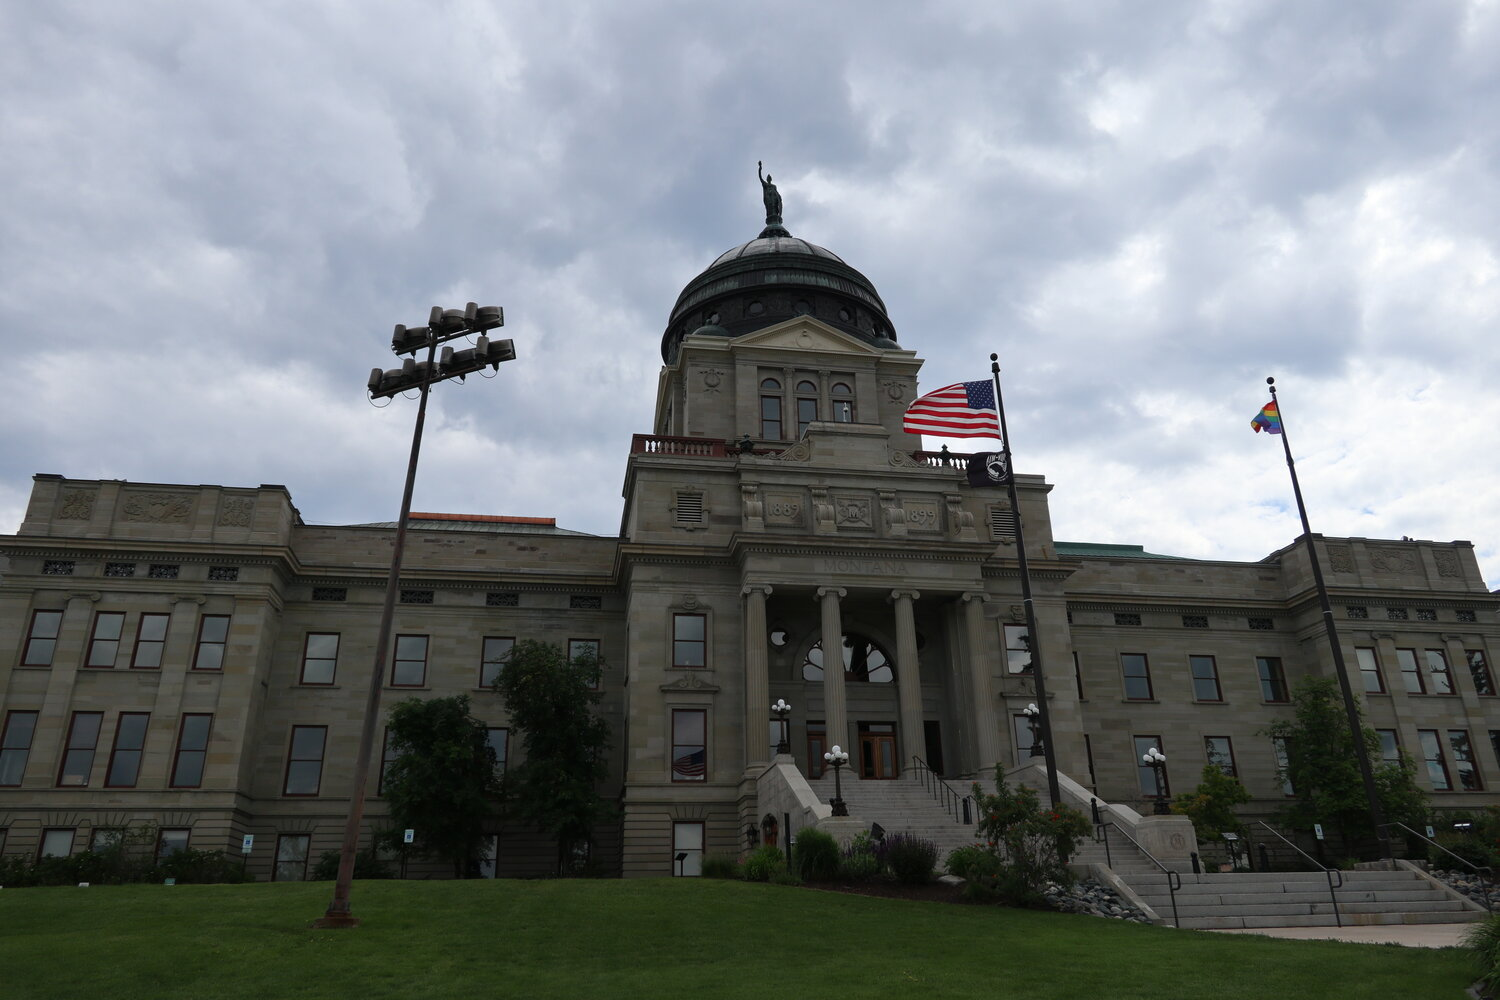 The Montana State Capitol (2019年6月撮影)